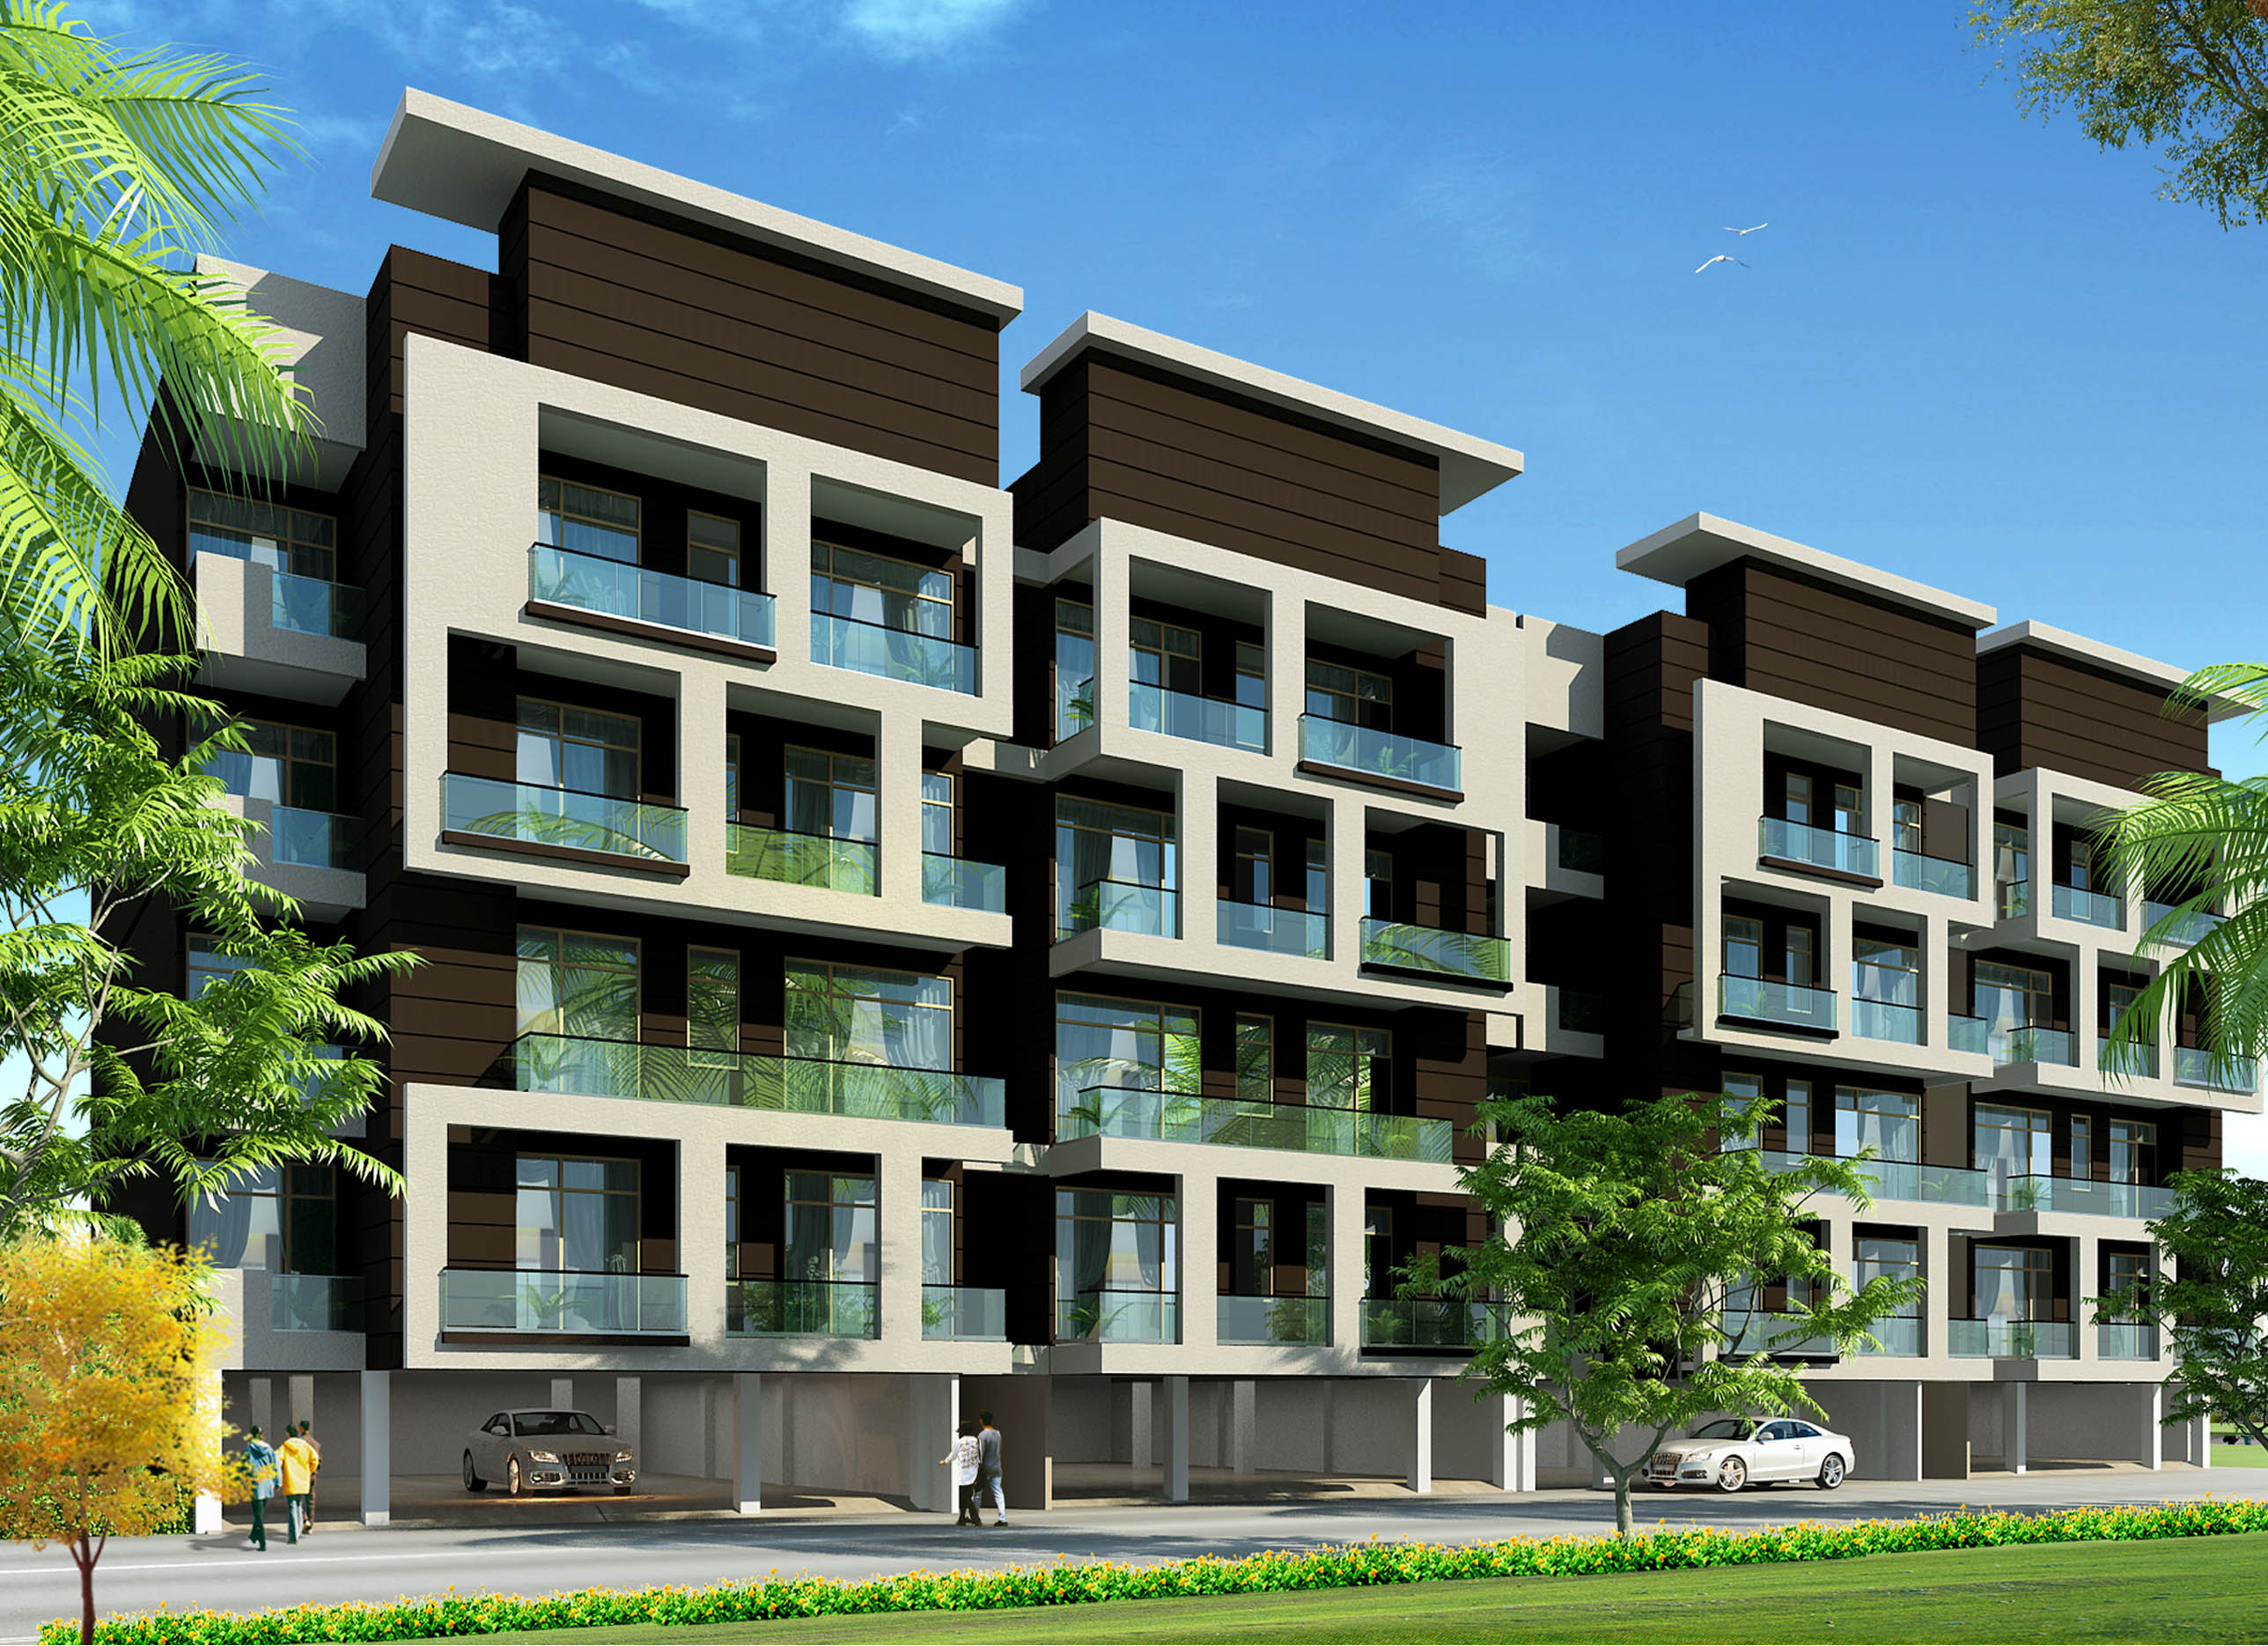 Utkarasht lotus green hathras space design group for Residential pictures